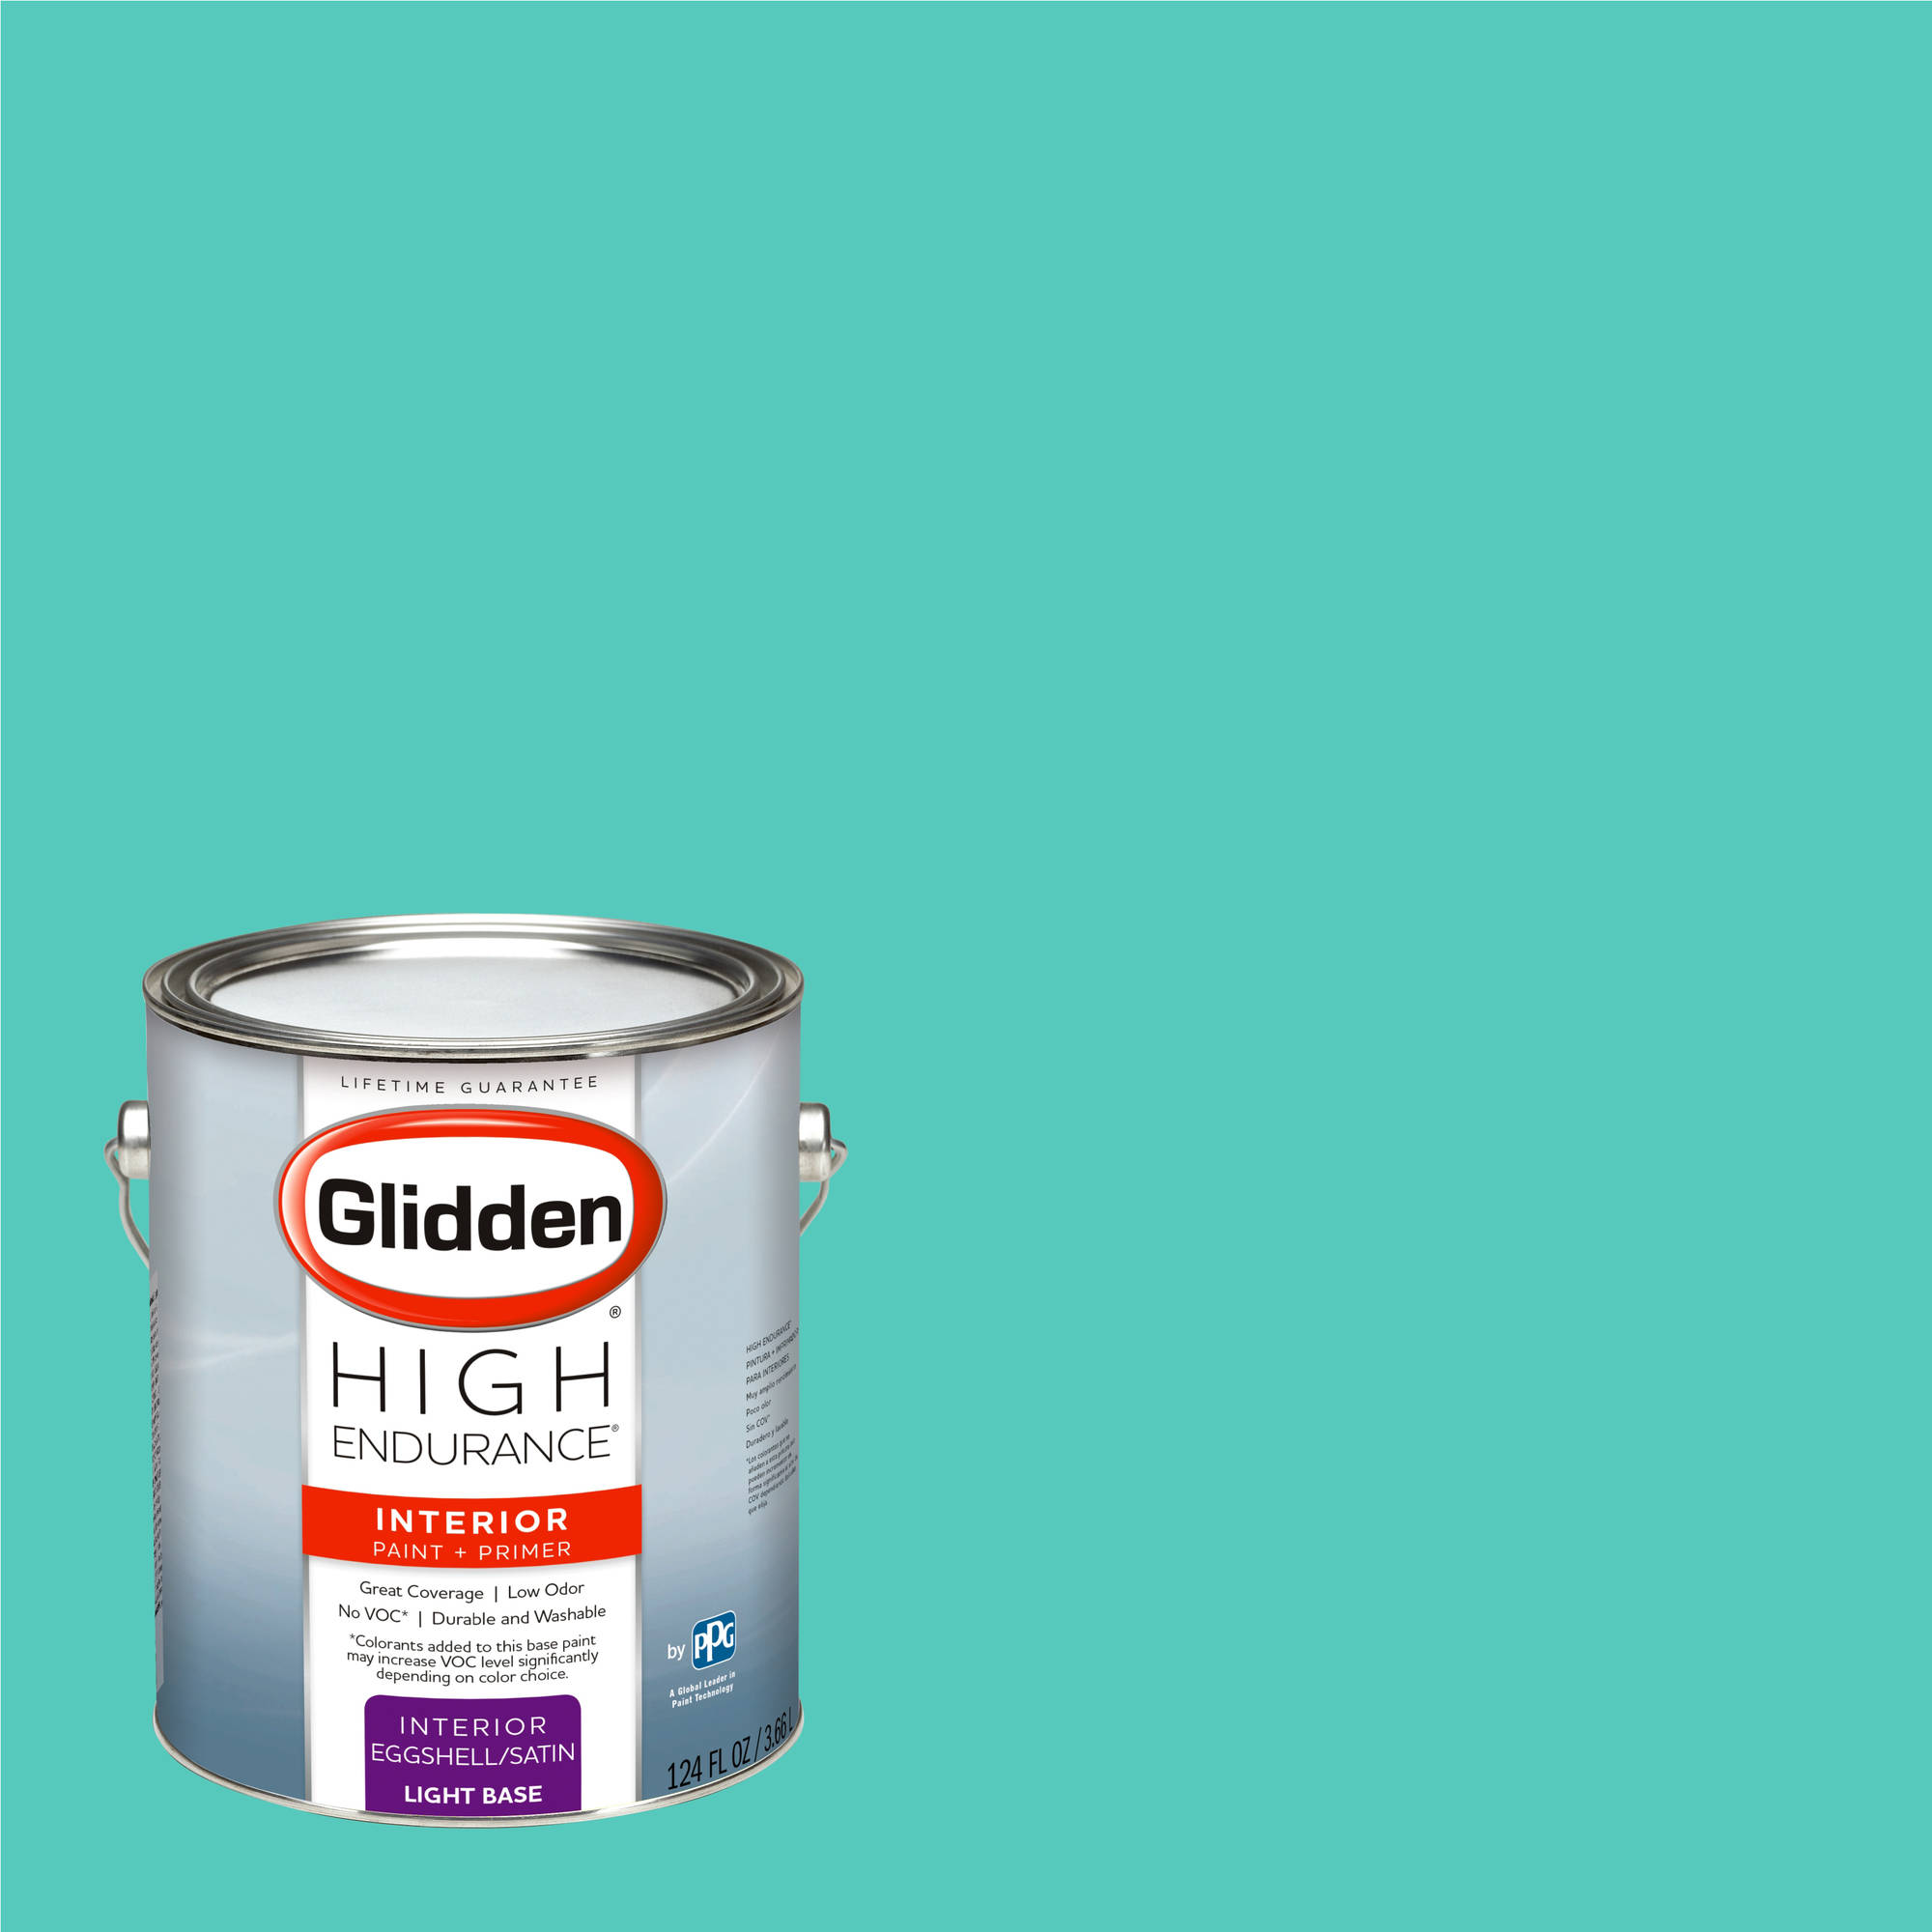 Glidden High Endurance, Interior Paint and Primer, Thai Teal, #53GG 50 360 by PPG Architectural Coatings